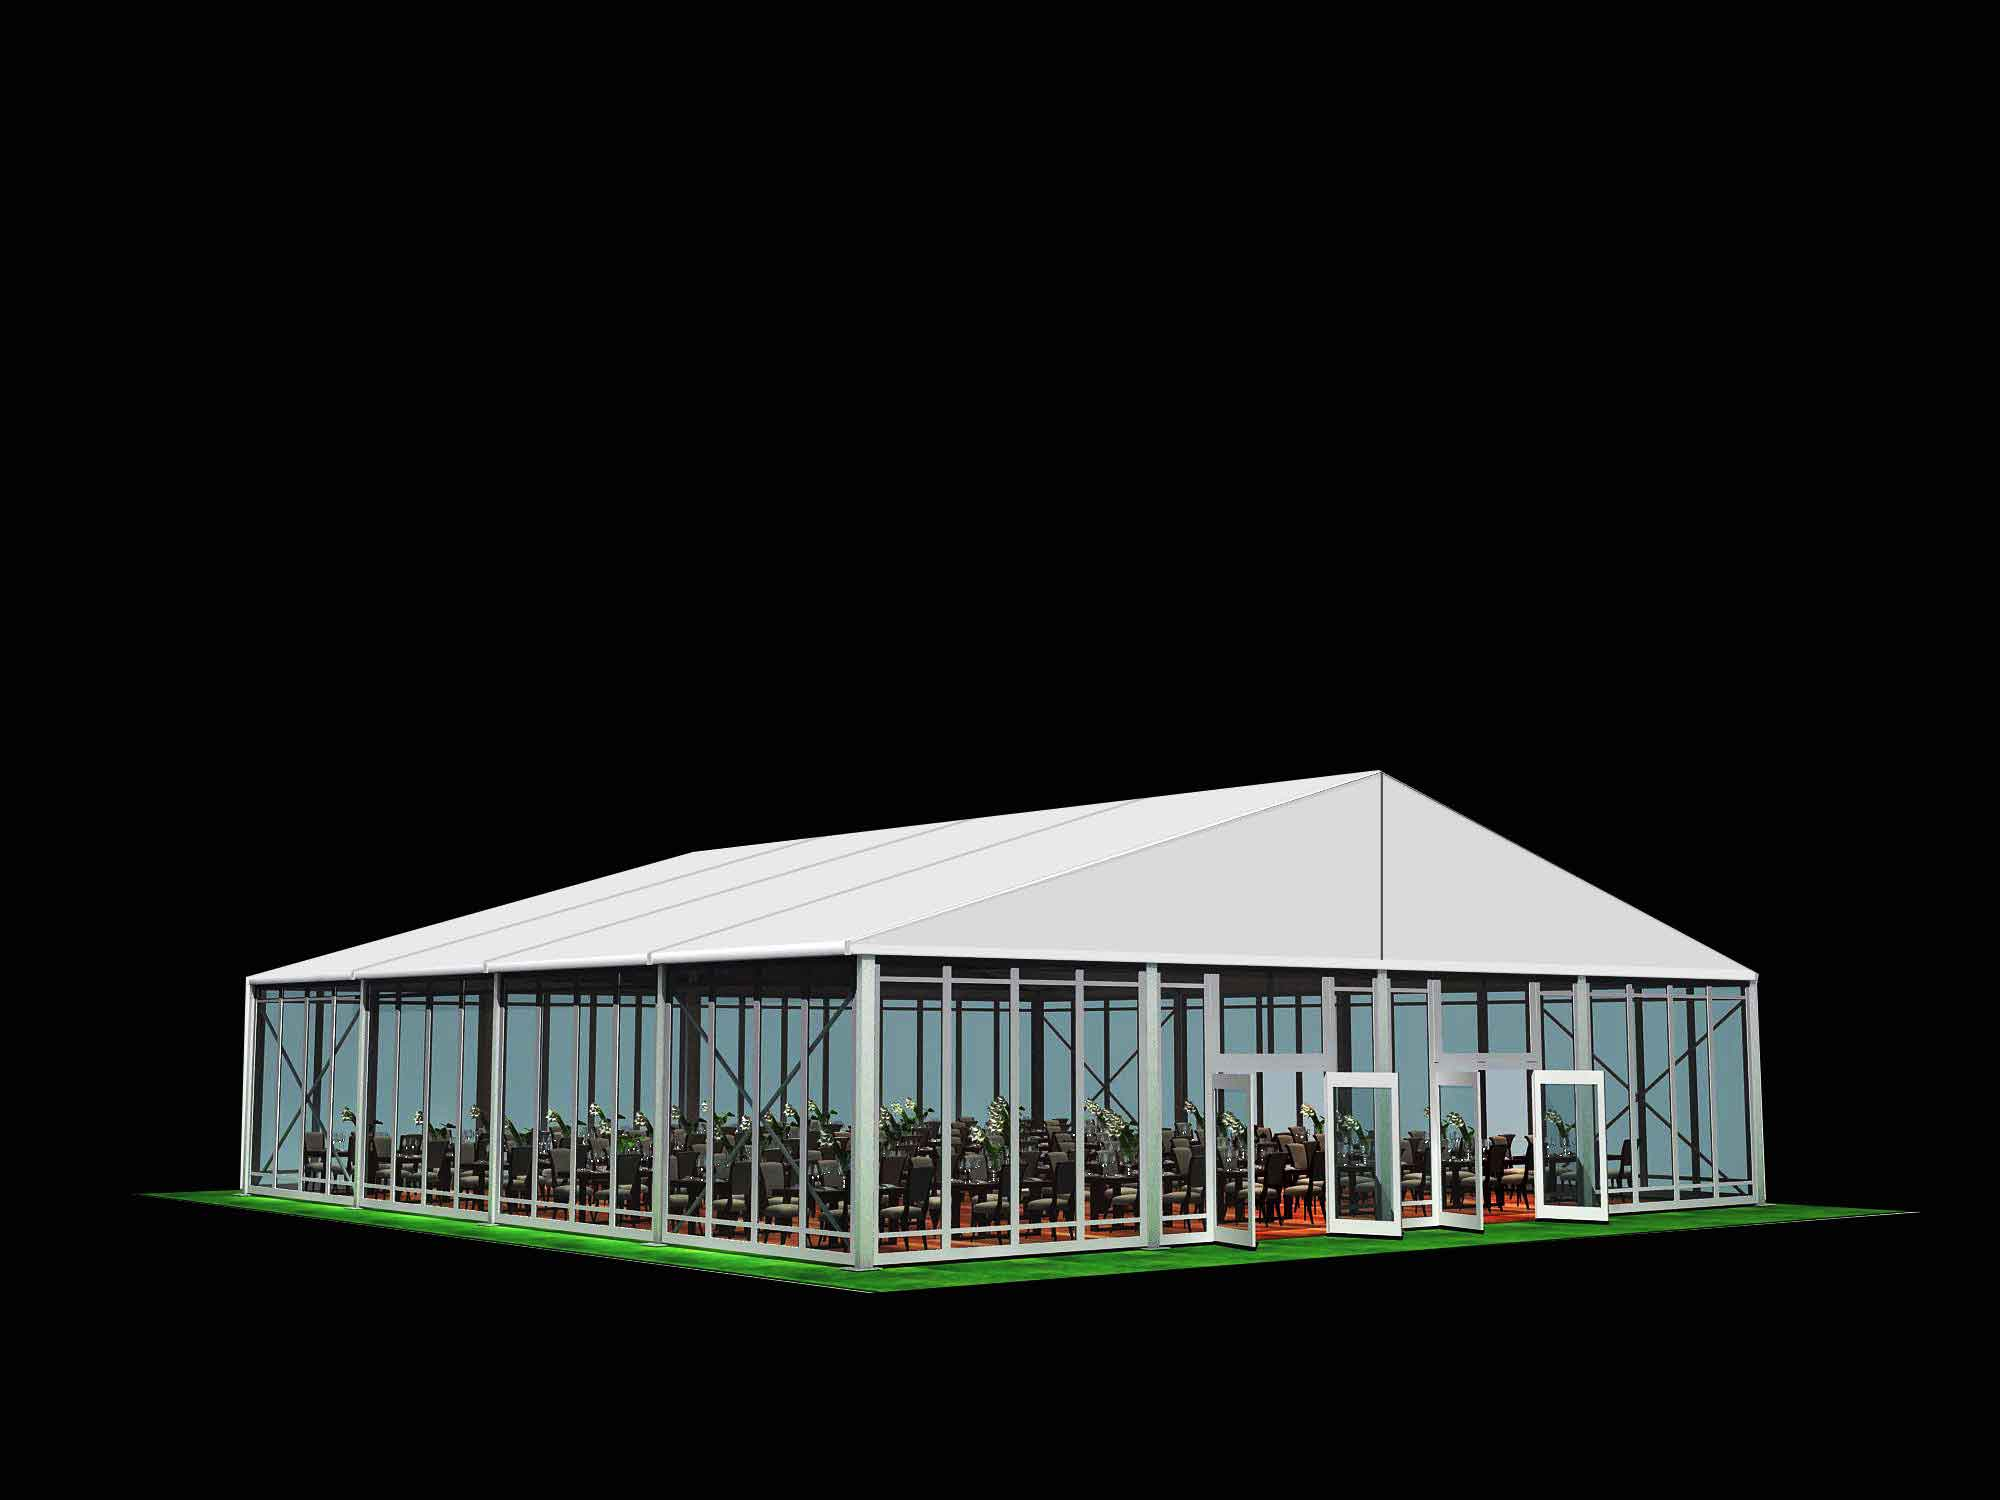 Commercial Event Tent Used In Outdoor Campaign And